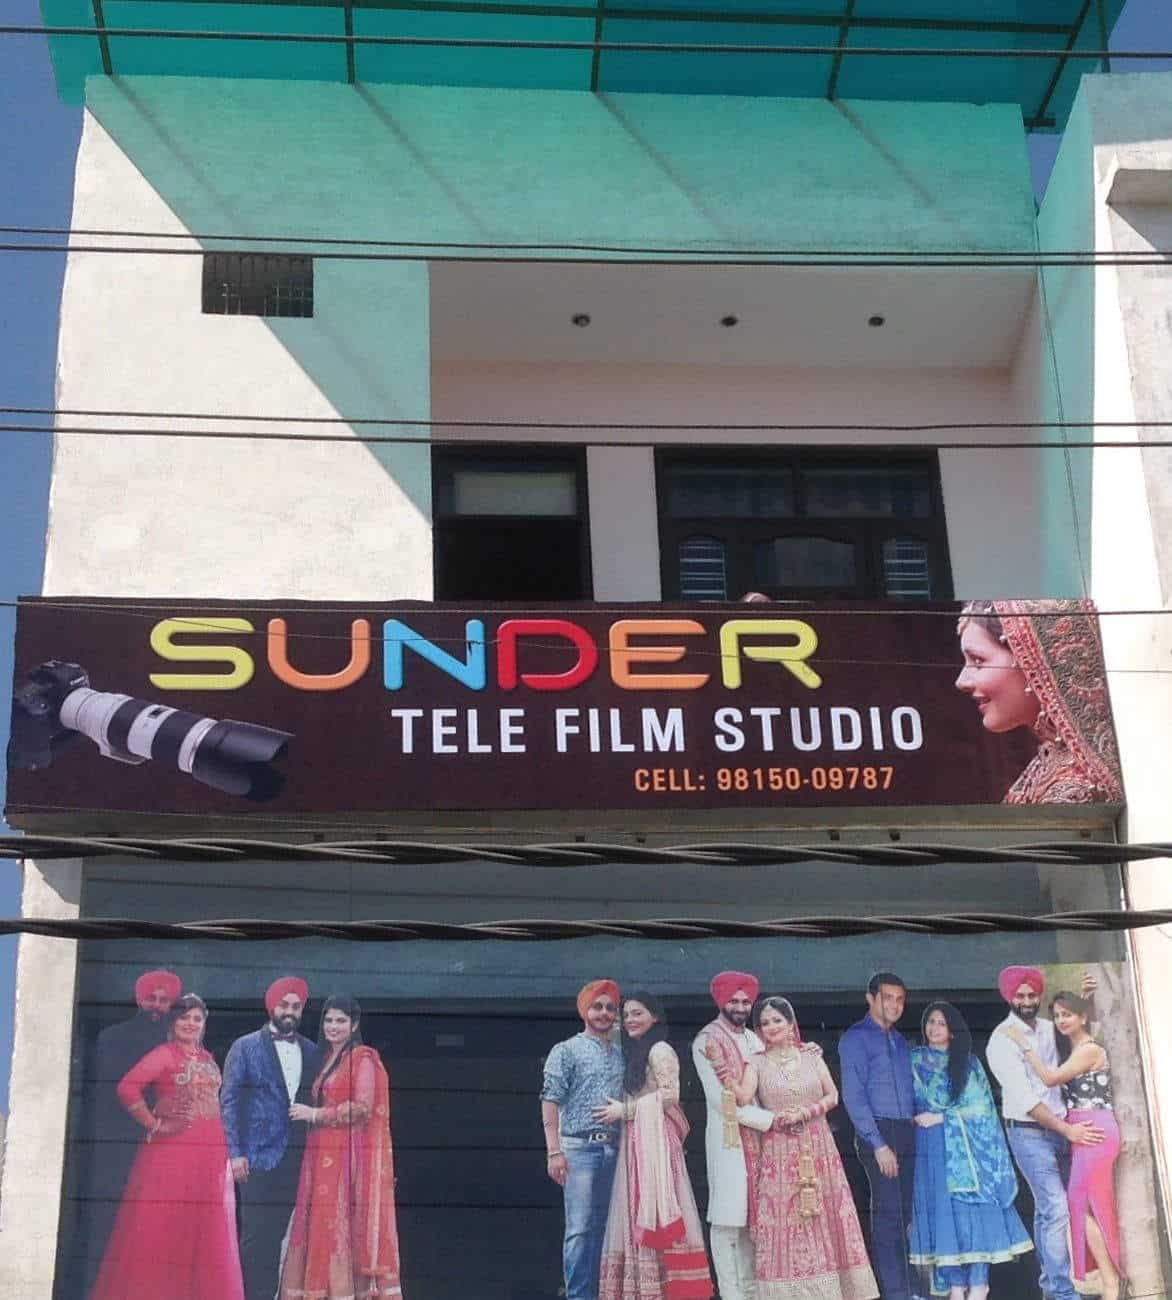 Sunder Tele Film Studio Photos Model Town Ludhiana Pictures  # Model Table Tele